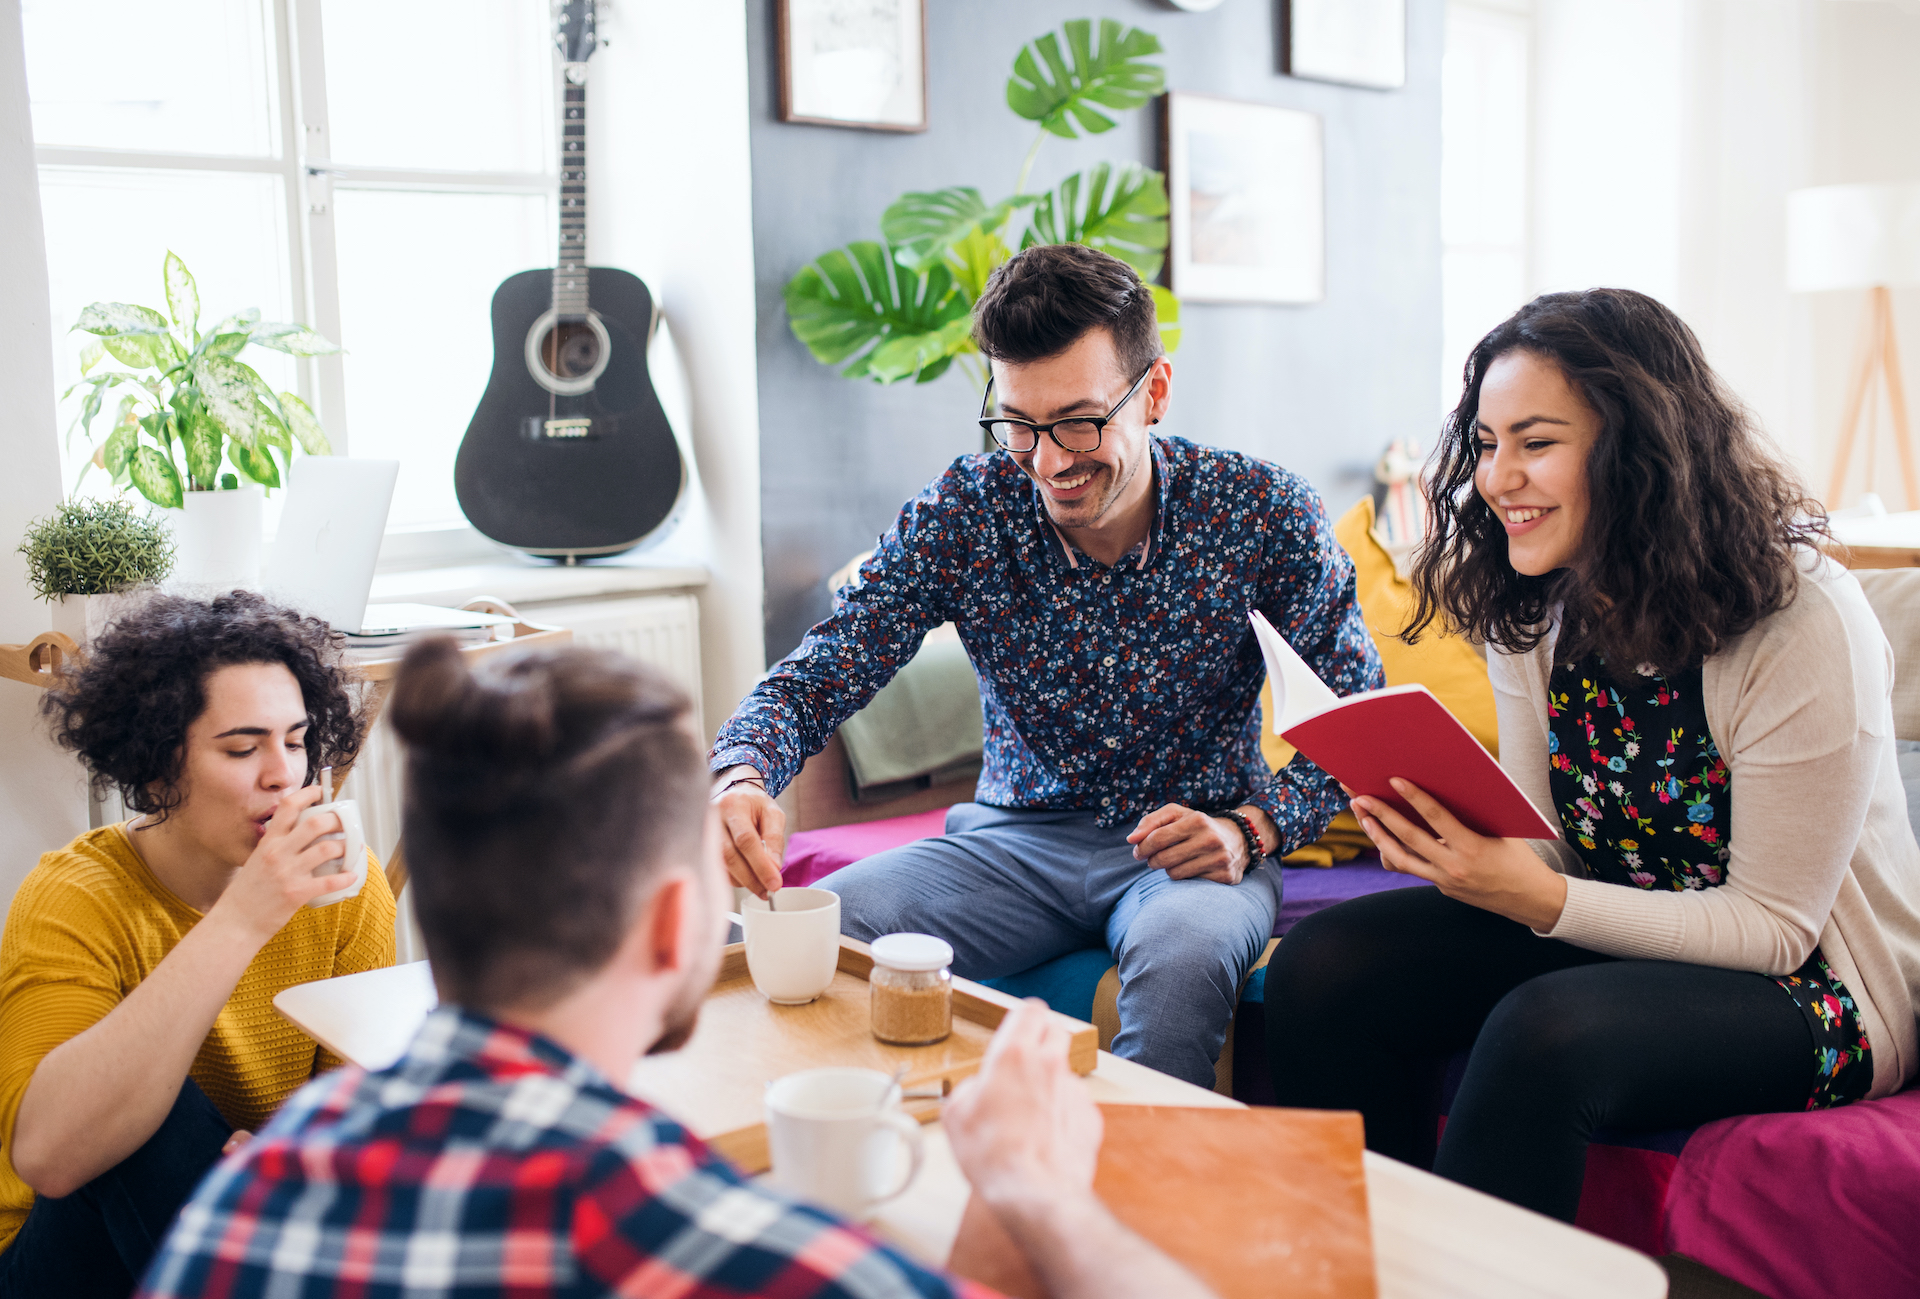 Renting a Room in a House: What to Know